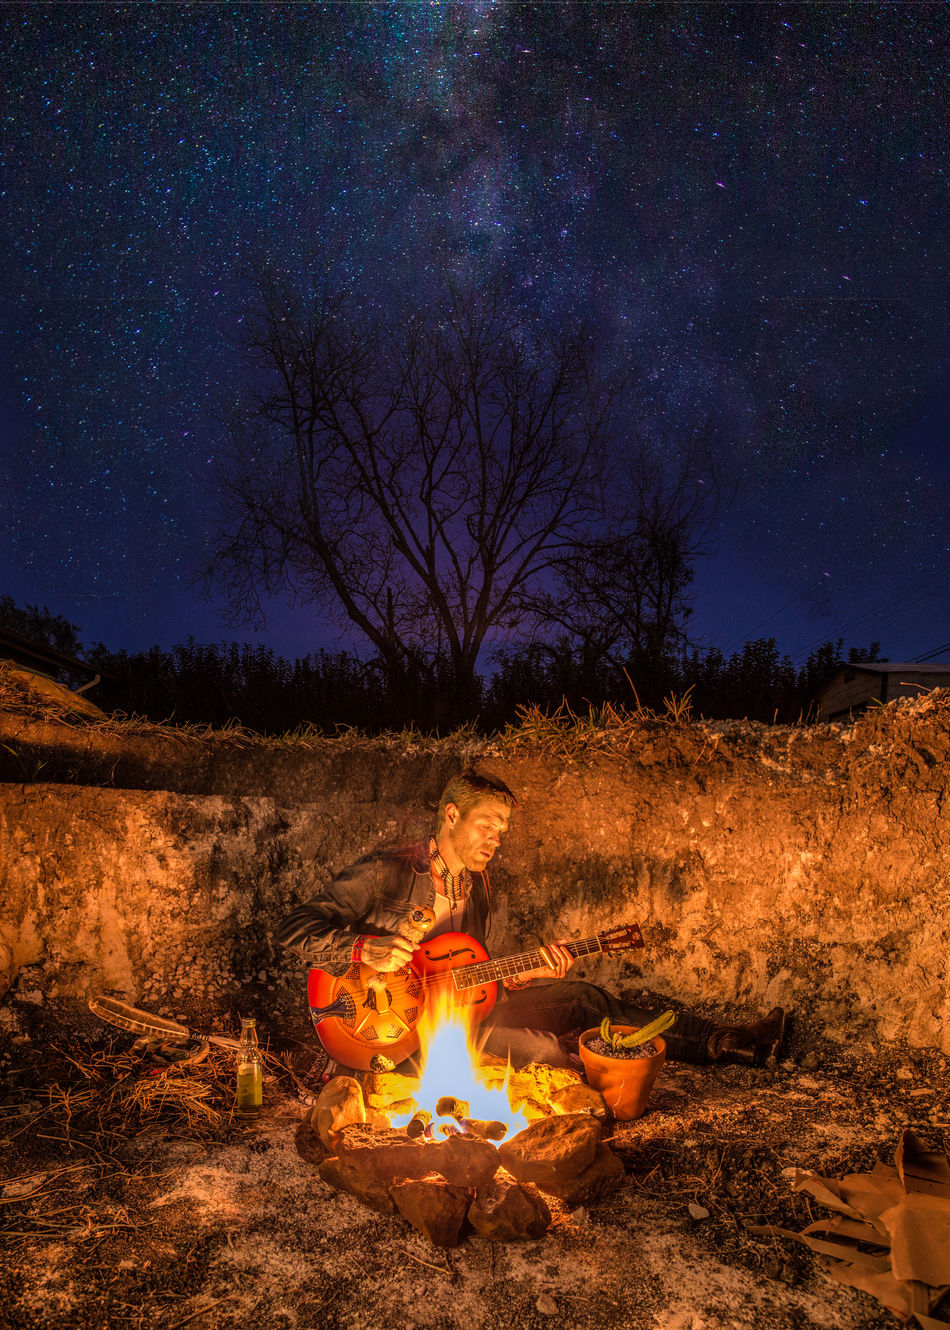 Beautiful stock photos of sterne, night, fire - natural phenomenon, flame, heat - temperature